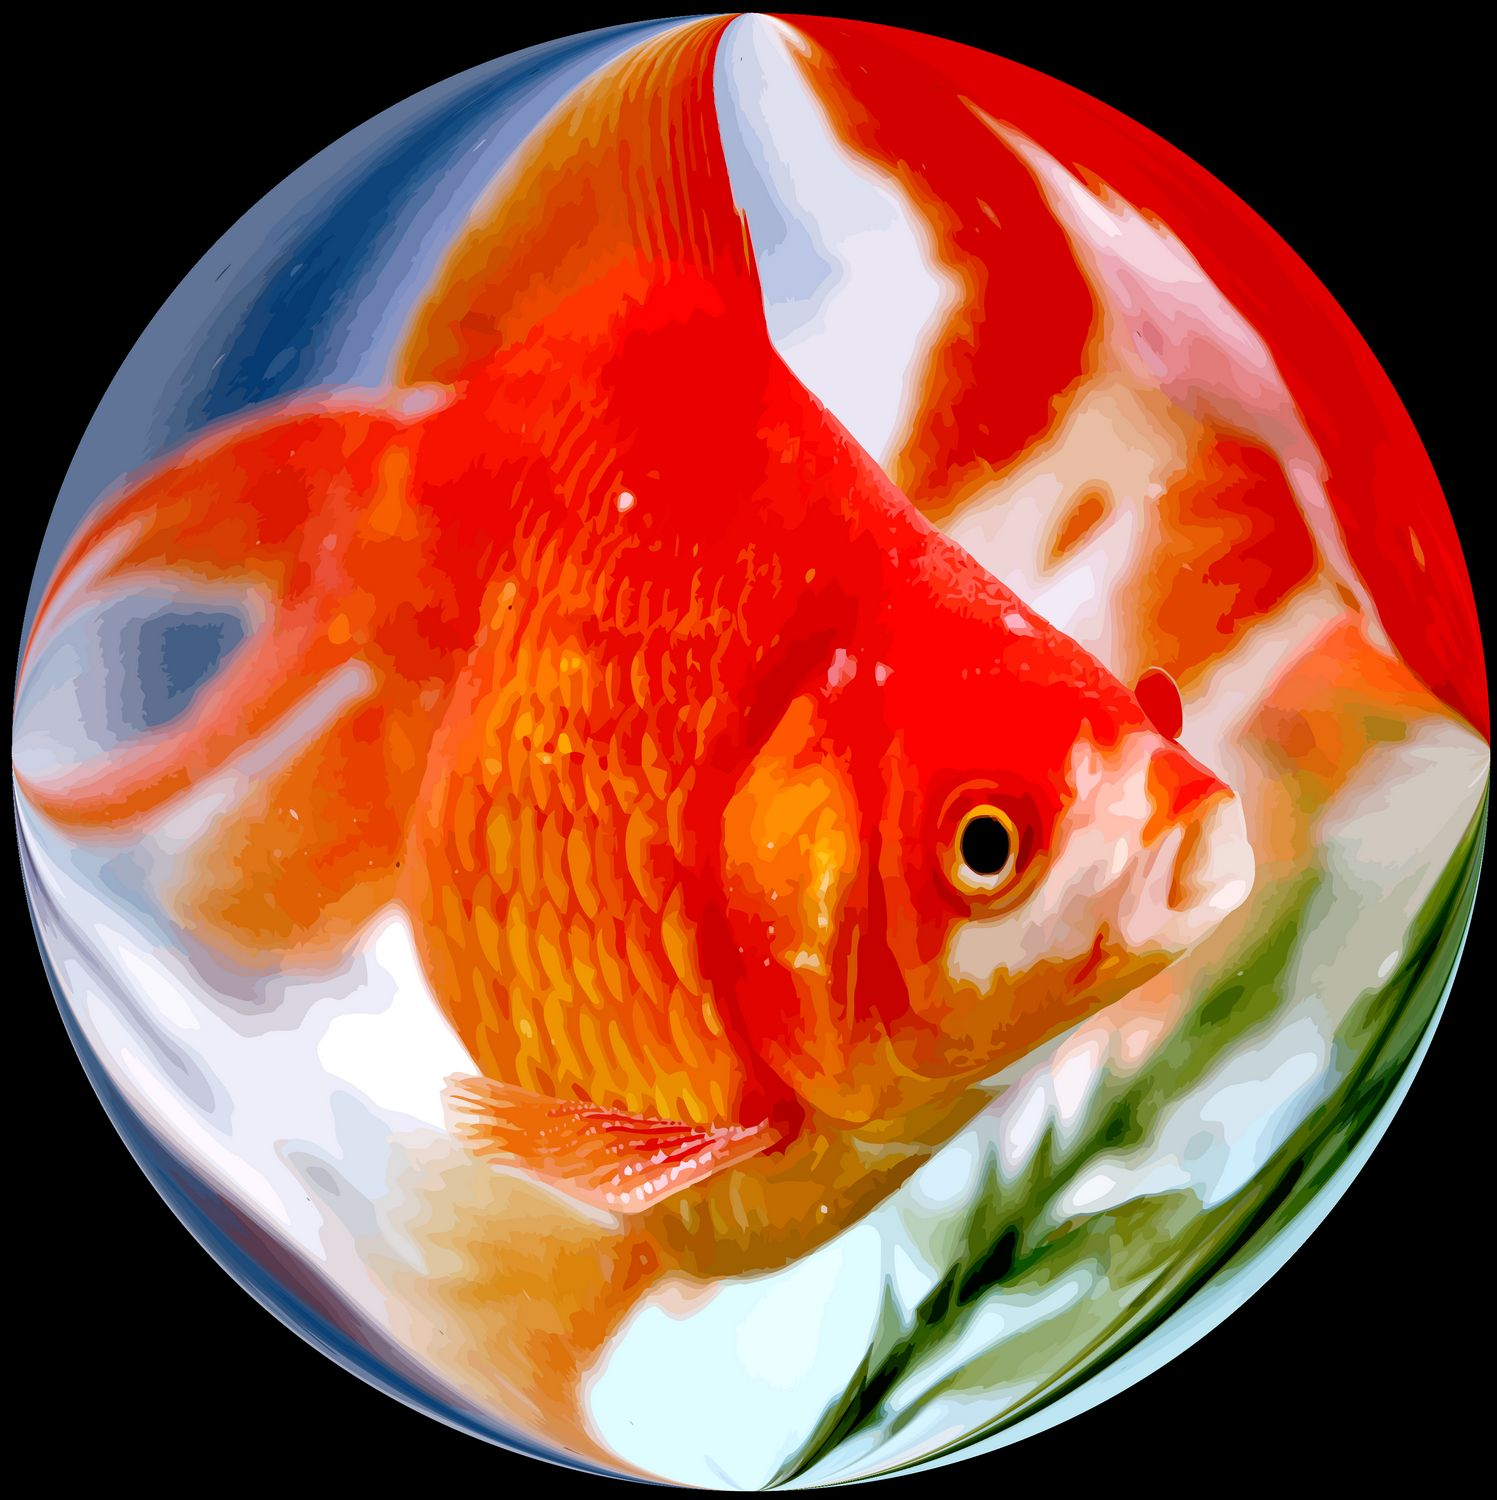 - Tokyo fish in a bubble  - Bubble Pictures - made with Wilkington-Smythe